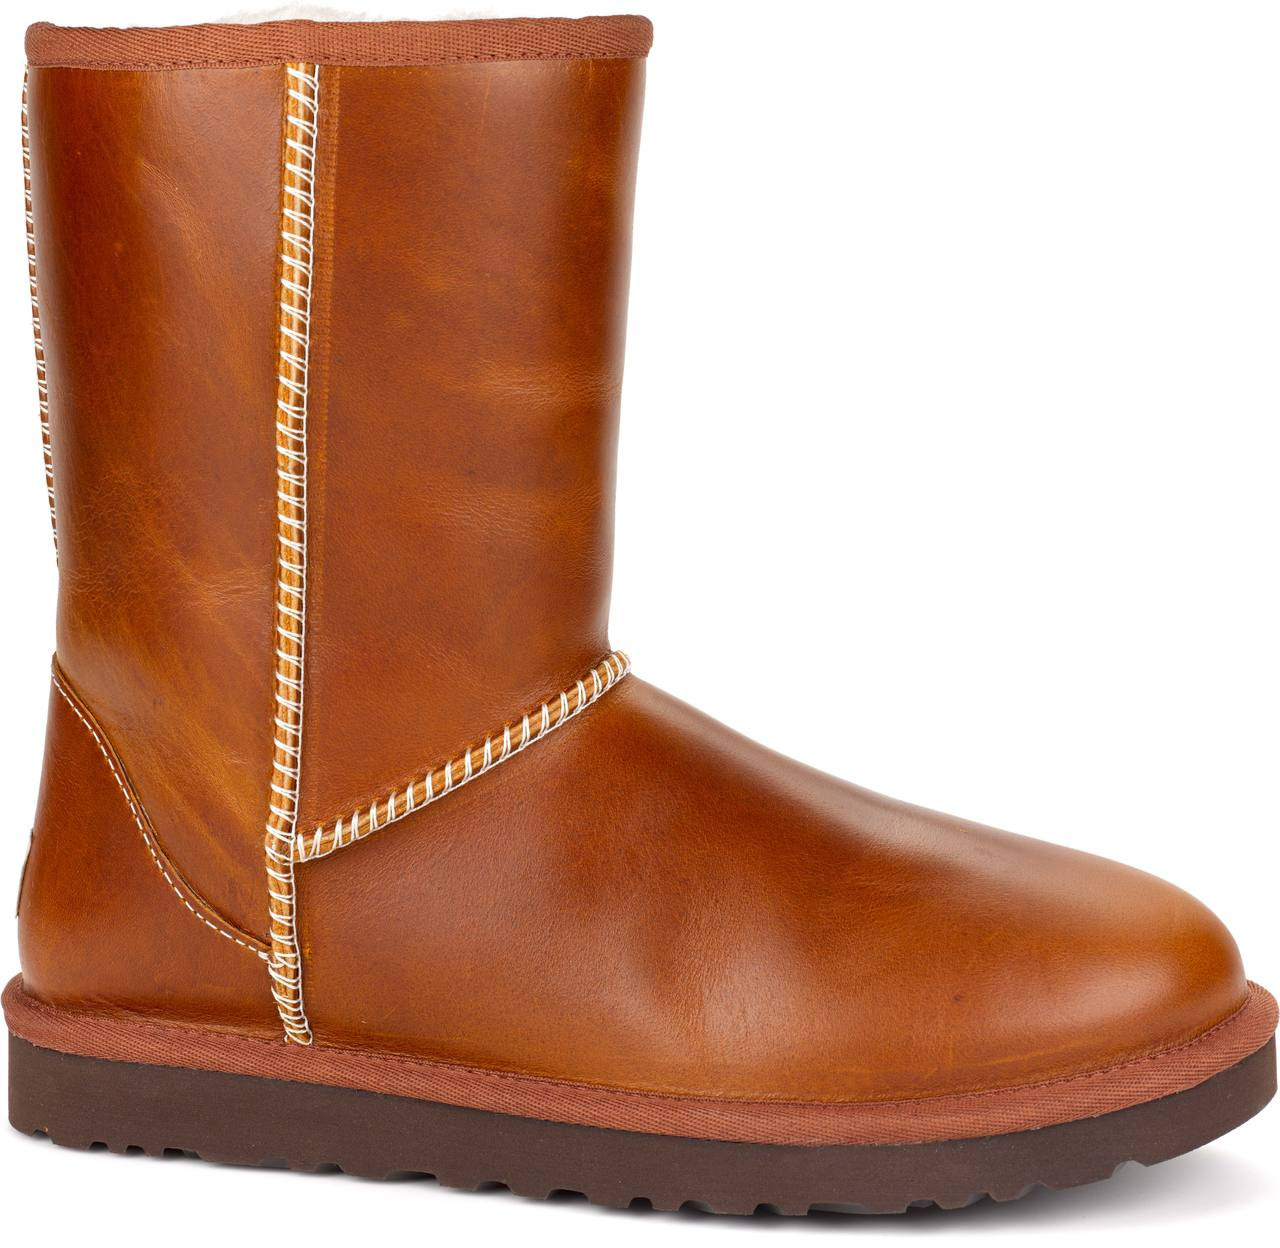 ugg classic short leather nz